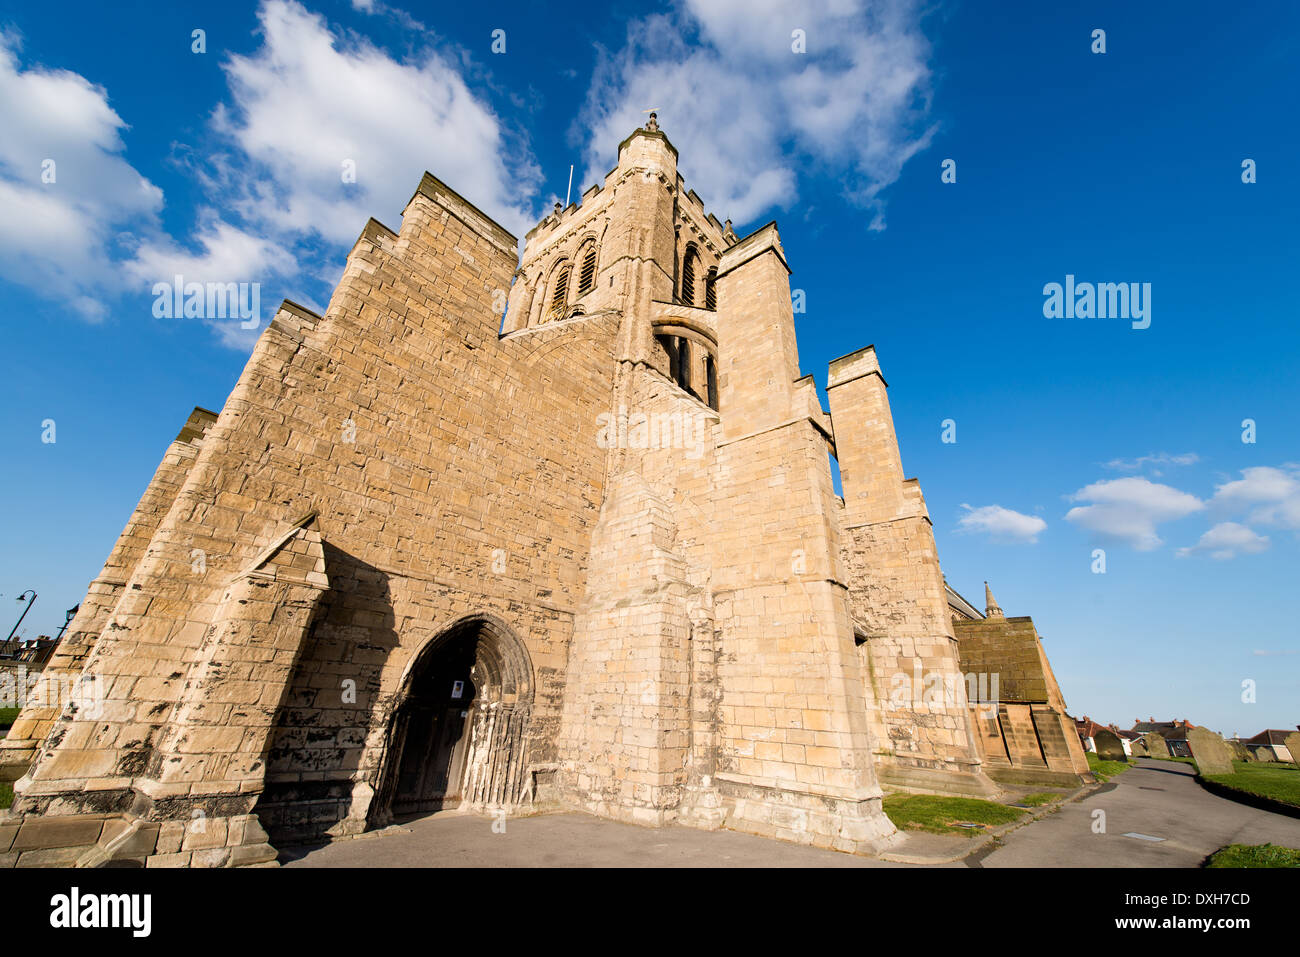 An unusual view of St Hilda's Church on the Headland of Hartlepool, UK. - Stock Image